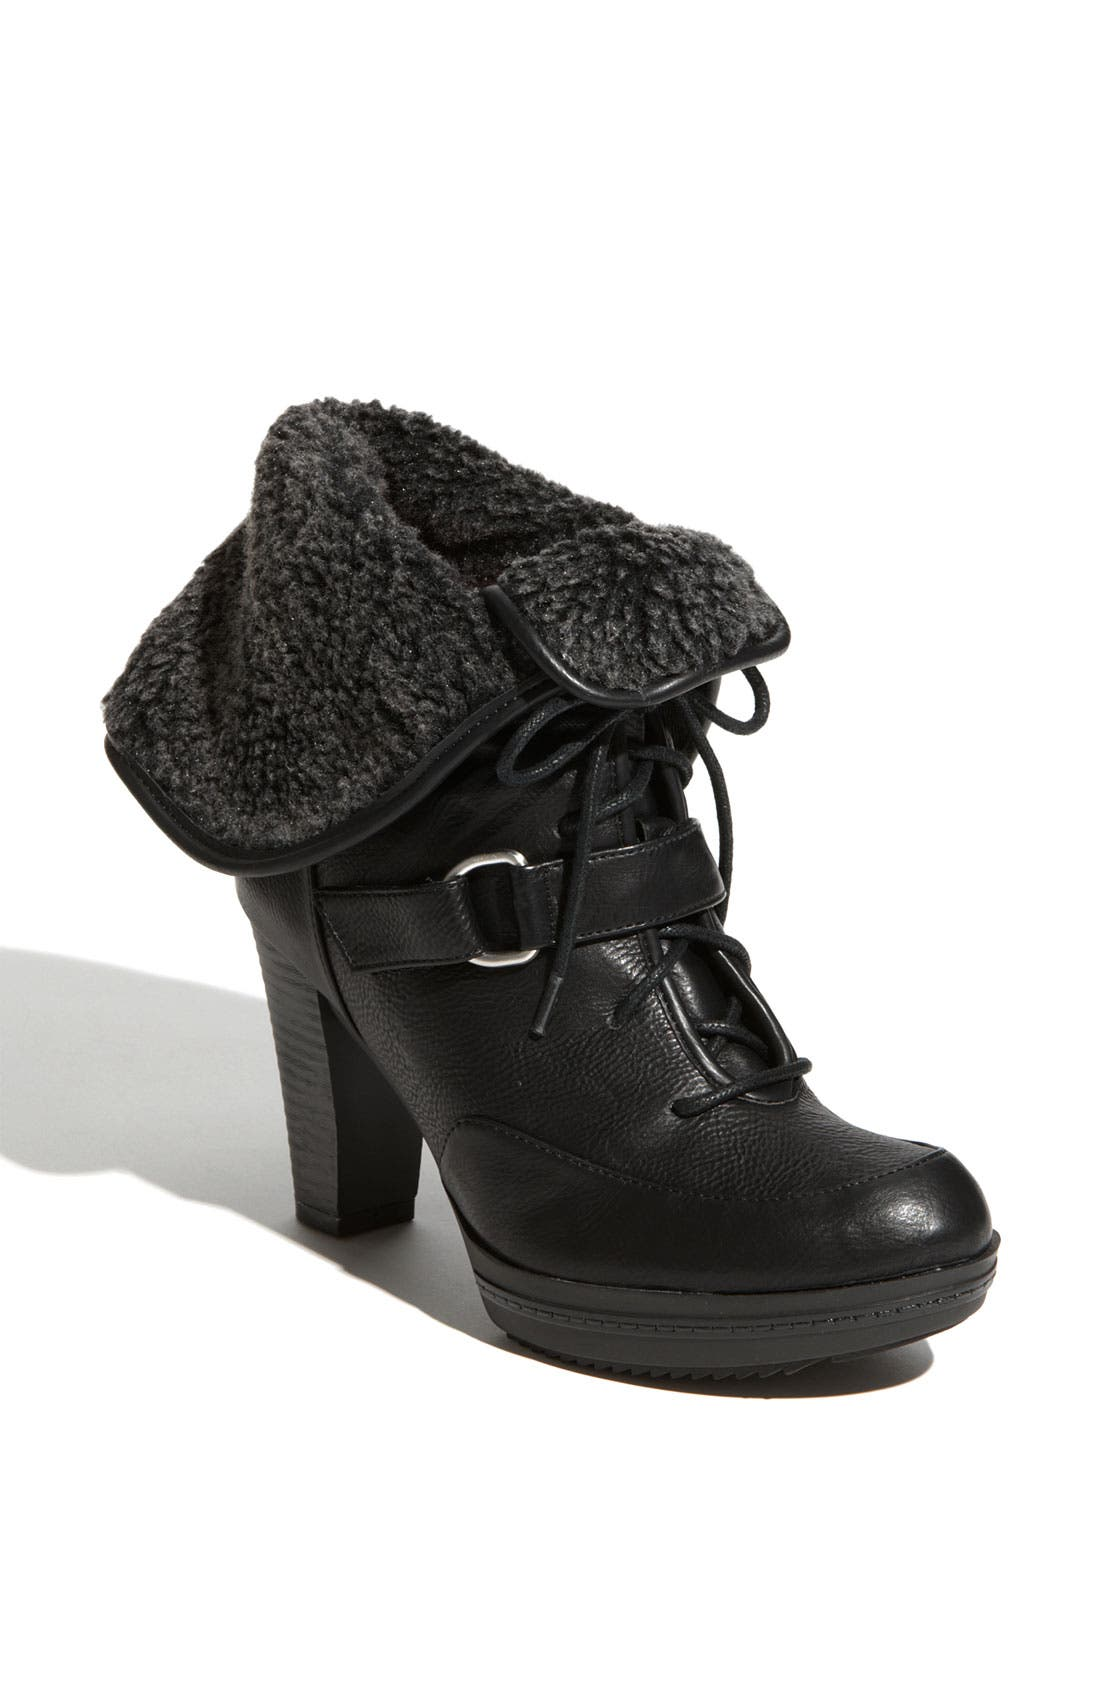 Alternate Image 1 Selected - Naturalizer 'Tyla' Boot